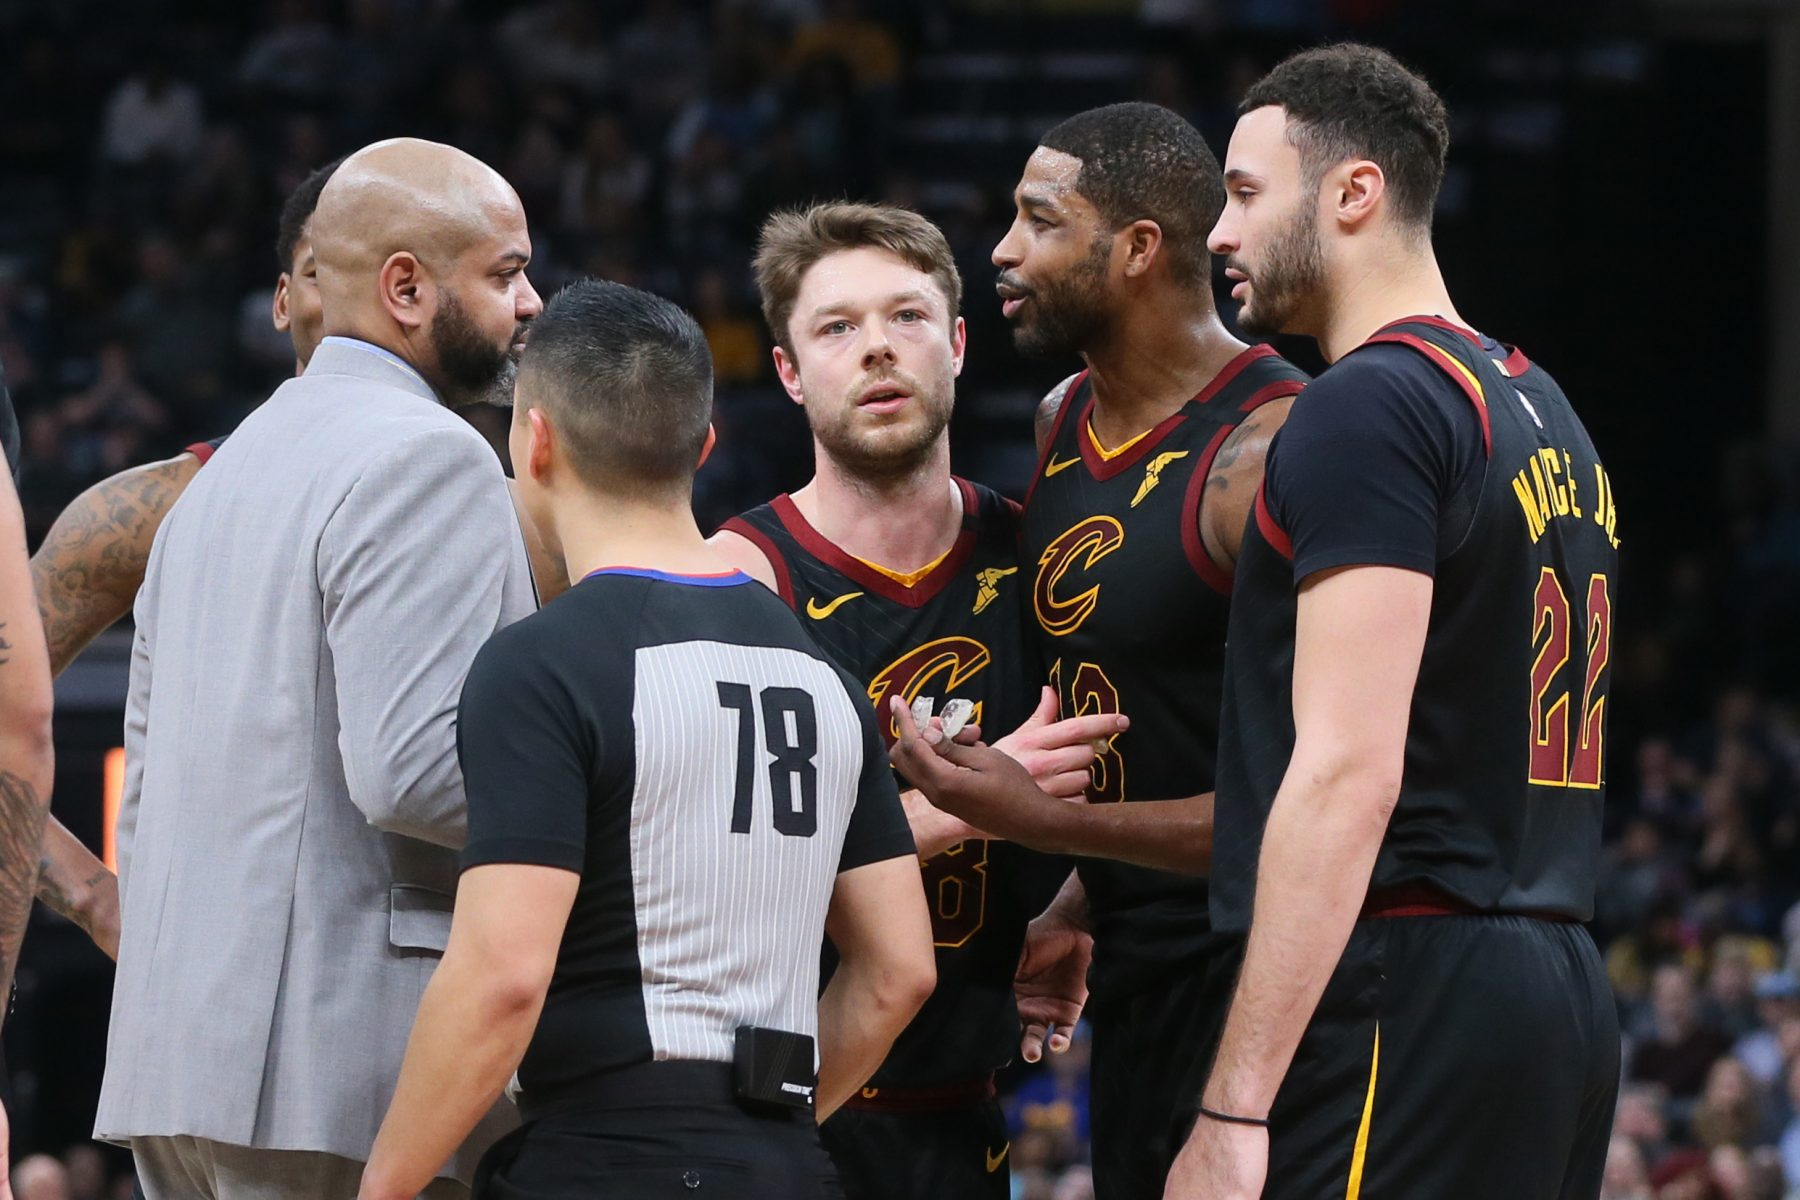 J.B. Bickerstaff, Tristan Thompson, Larry Nance Jr. and Matthew Dellavedova